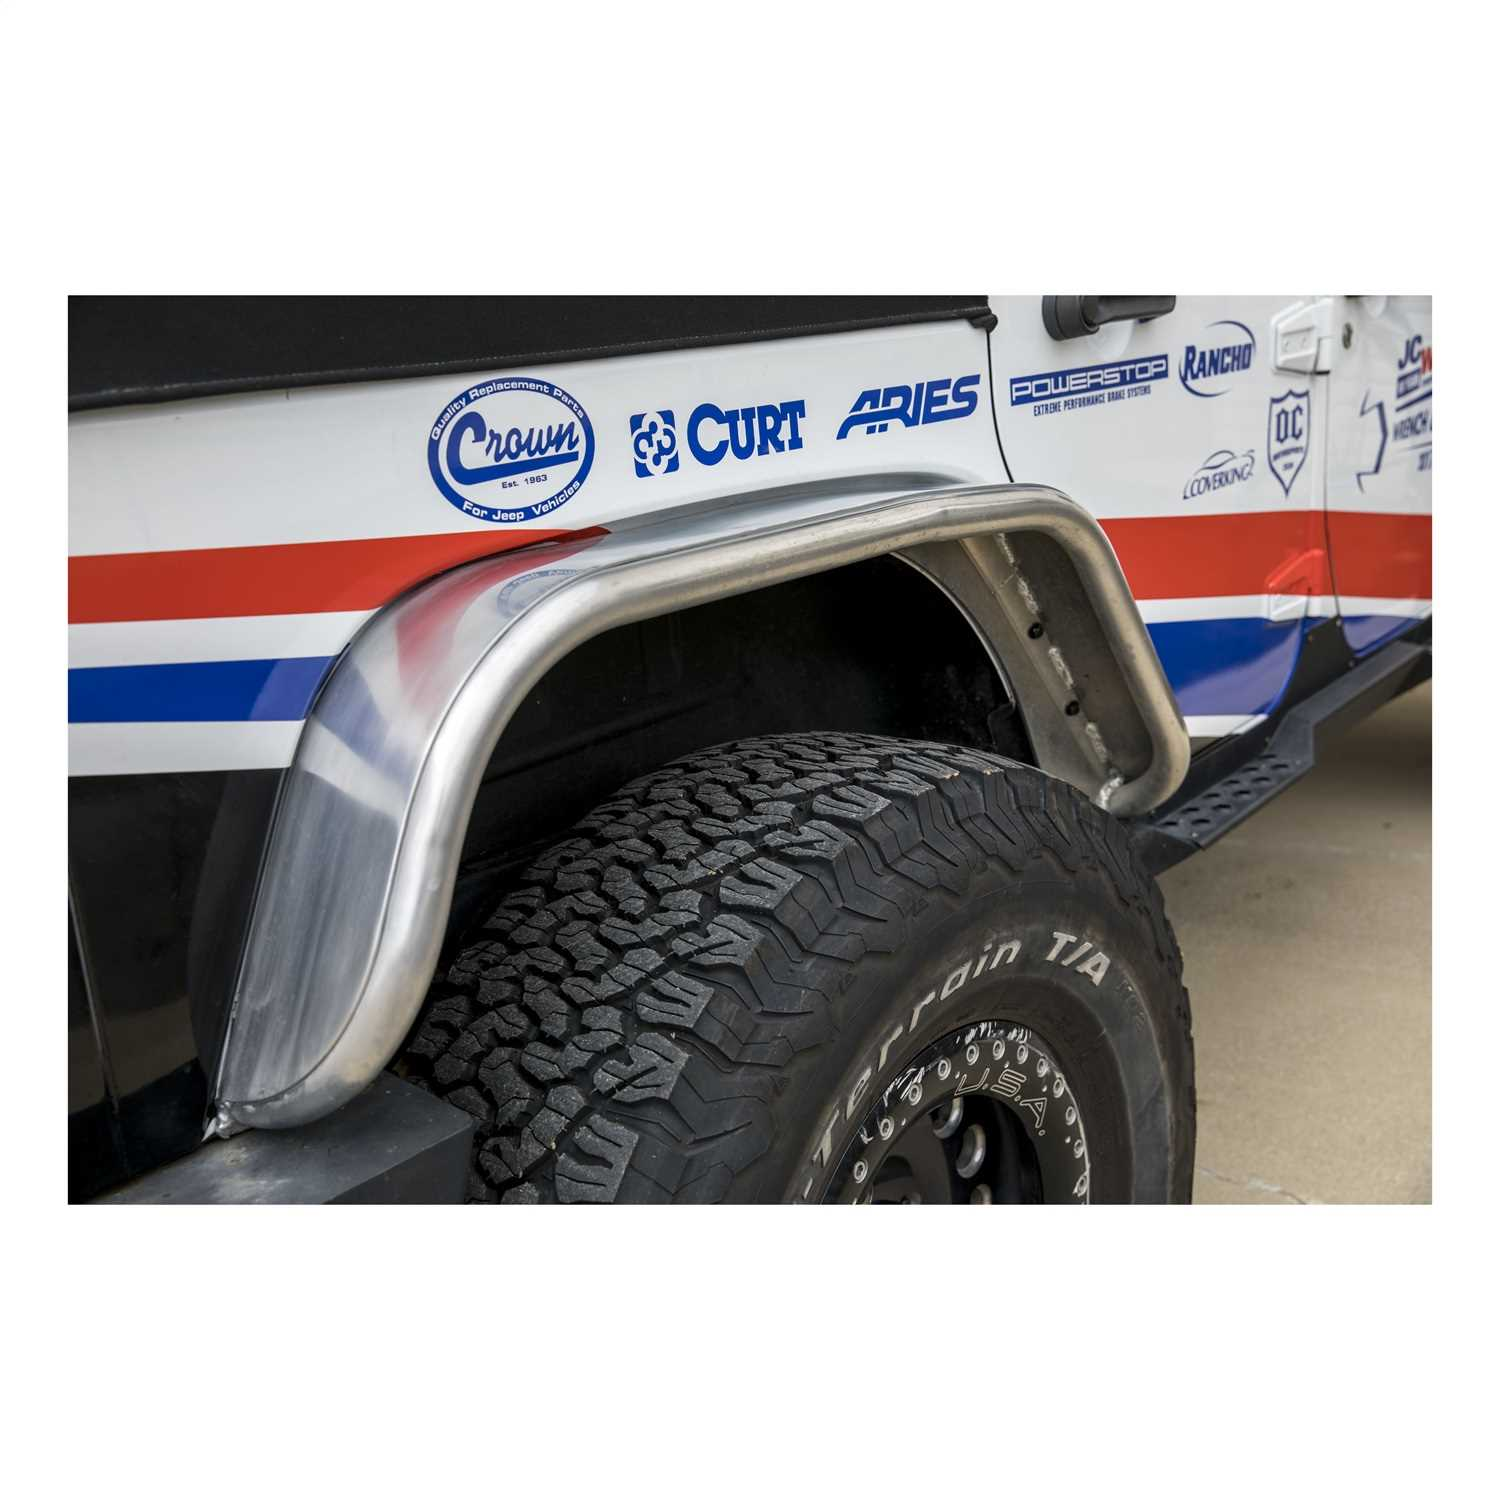 Fender Flares Auto Outfitters Installing Jeep Vehicle Fitment View Guide